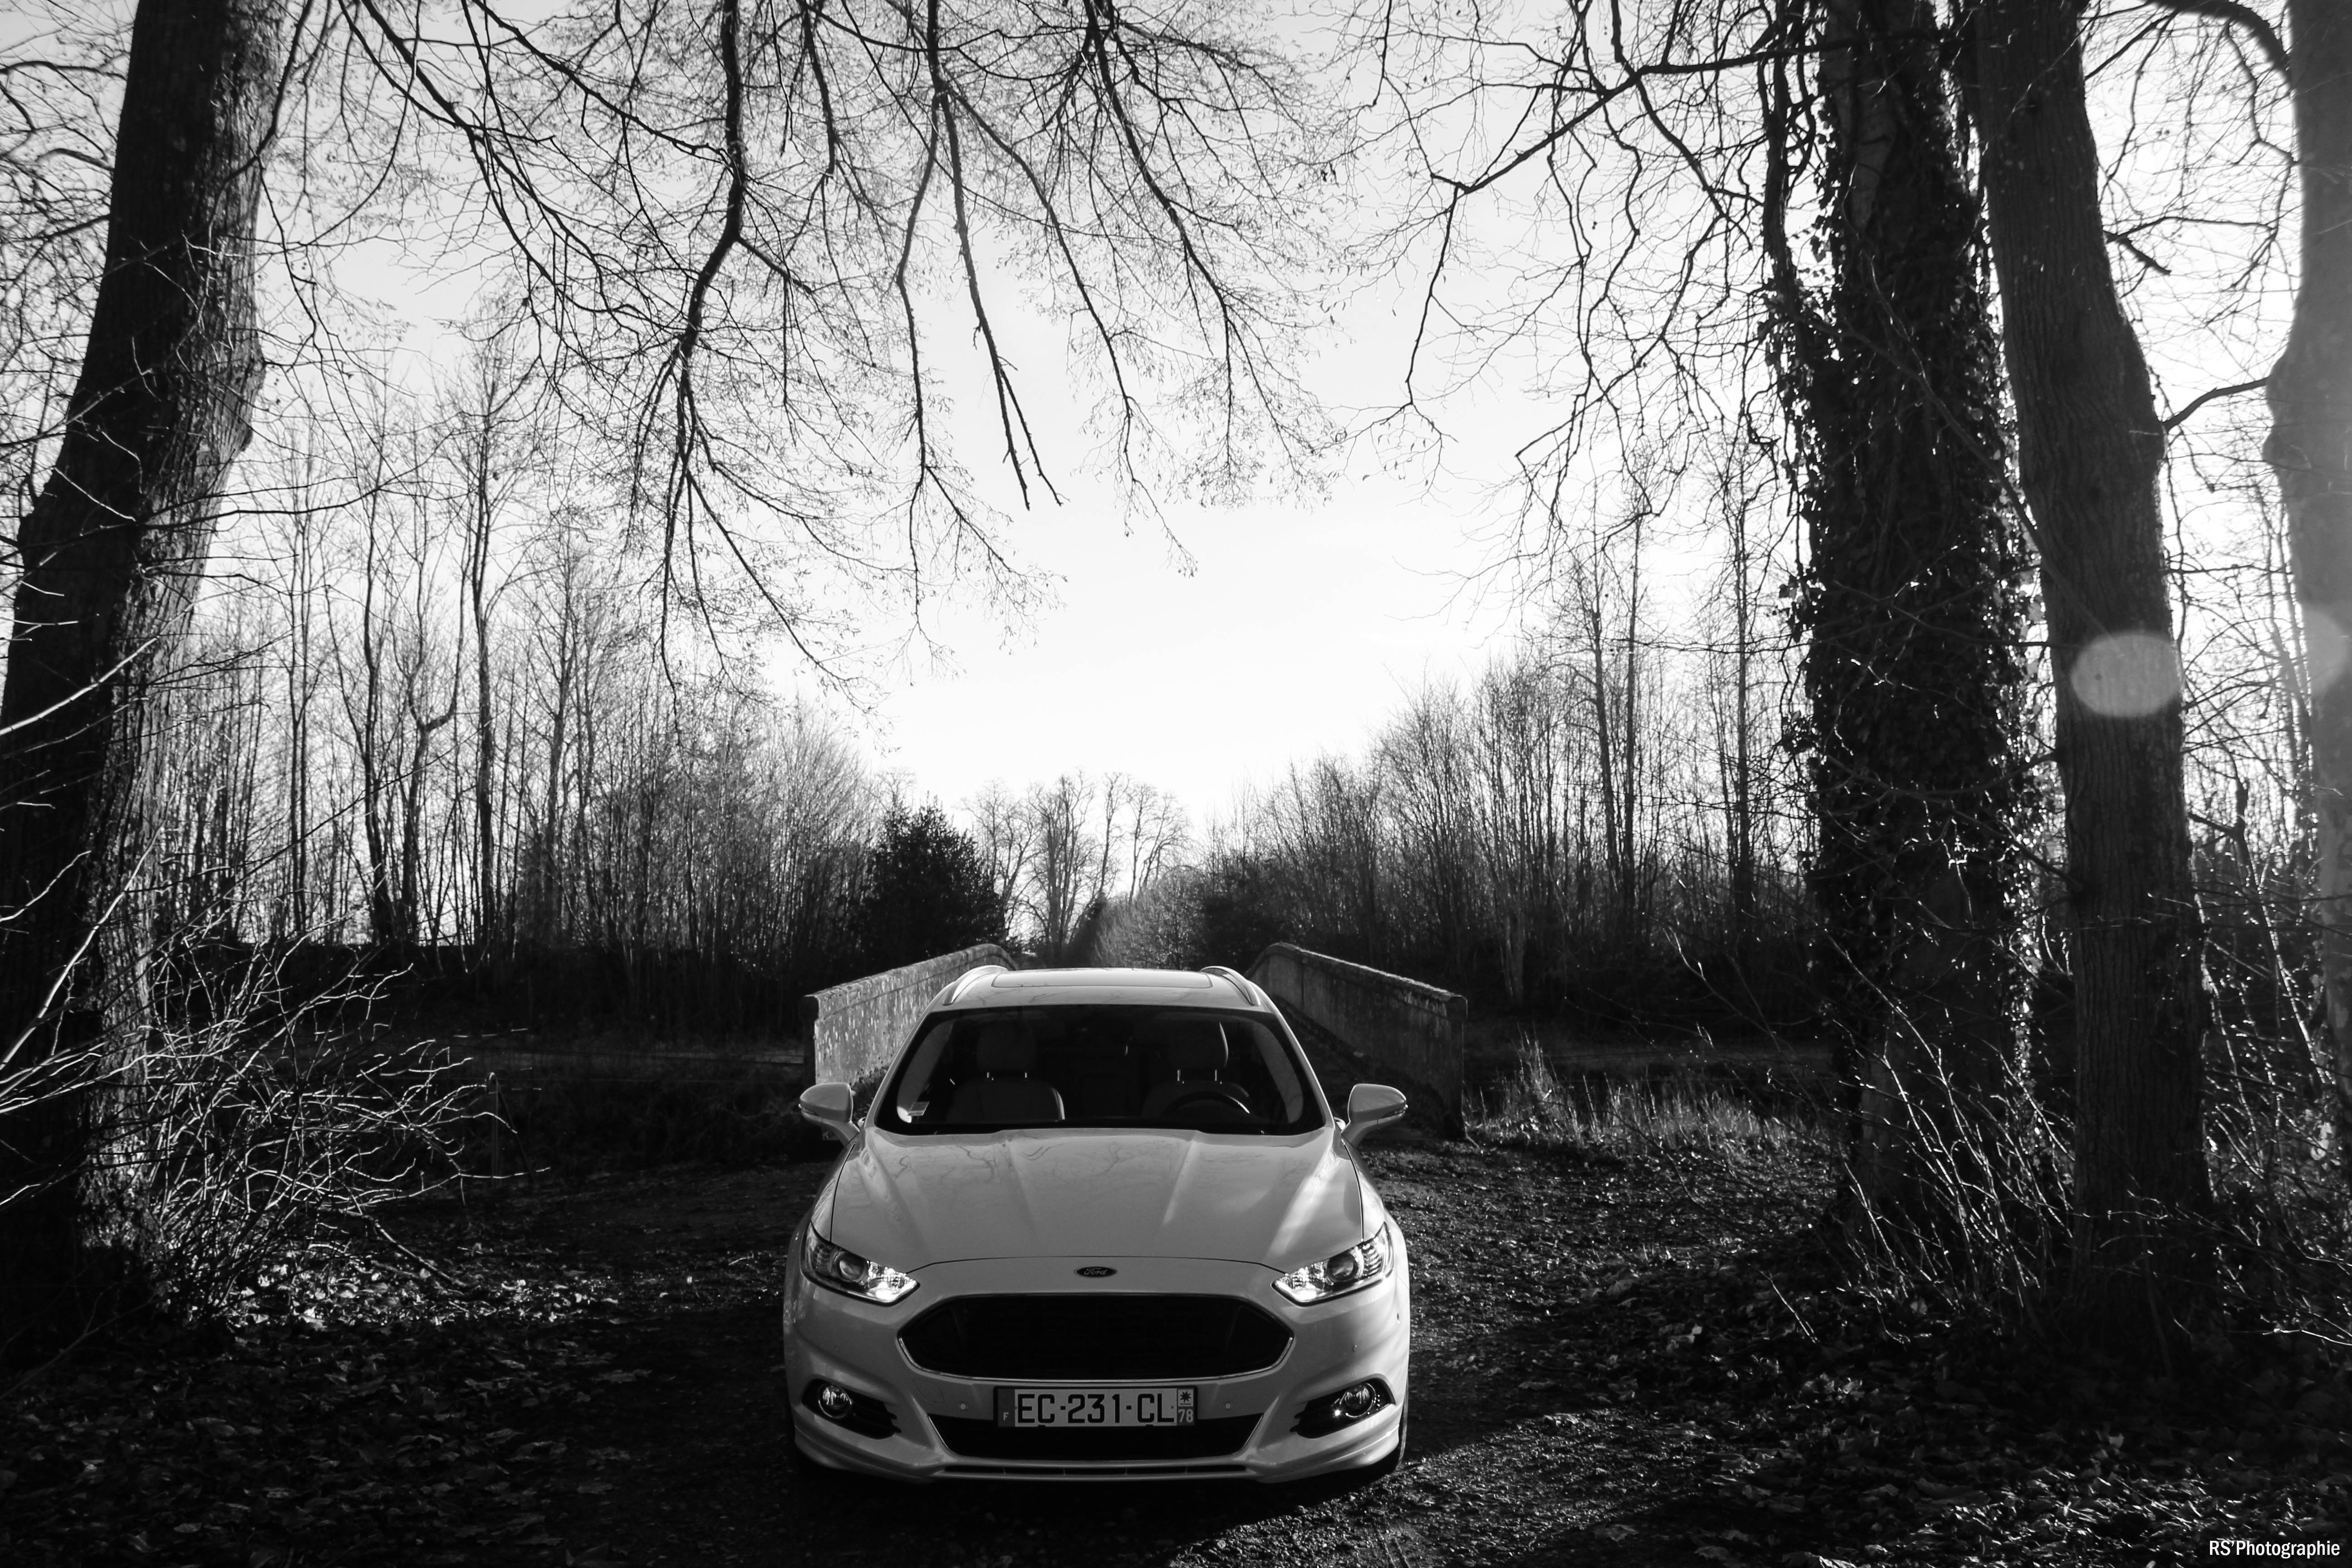 FordMondeoSW8-ford-mondeo-sw-180-avant-front-arnaud-demasier-rsphotographie